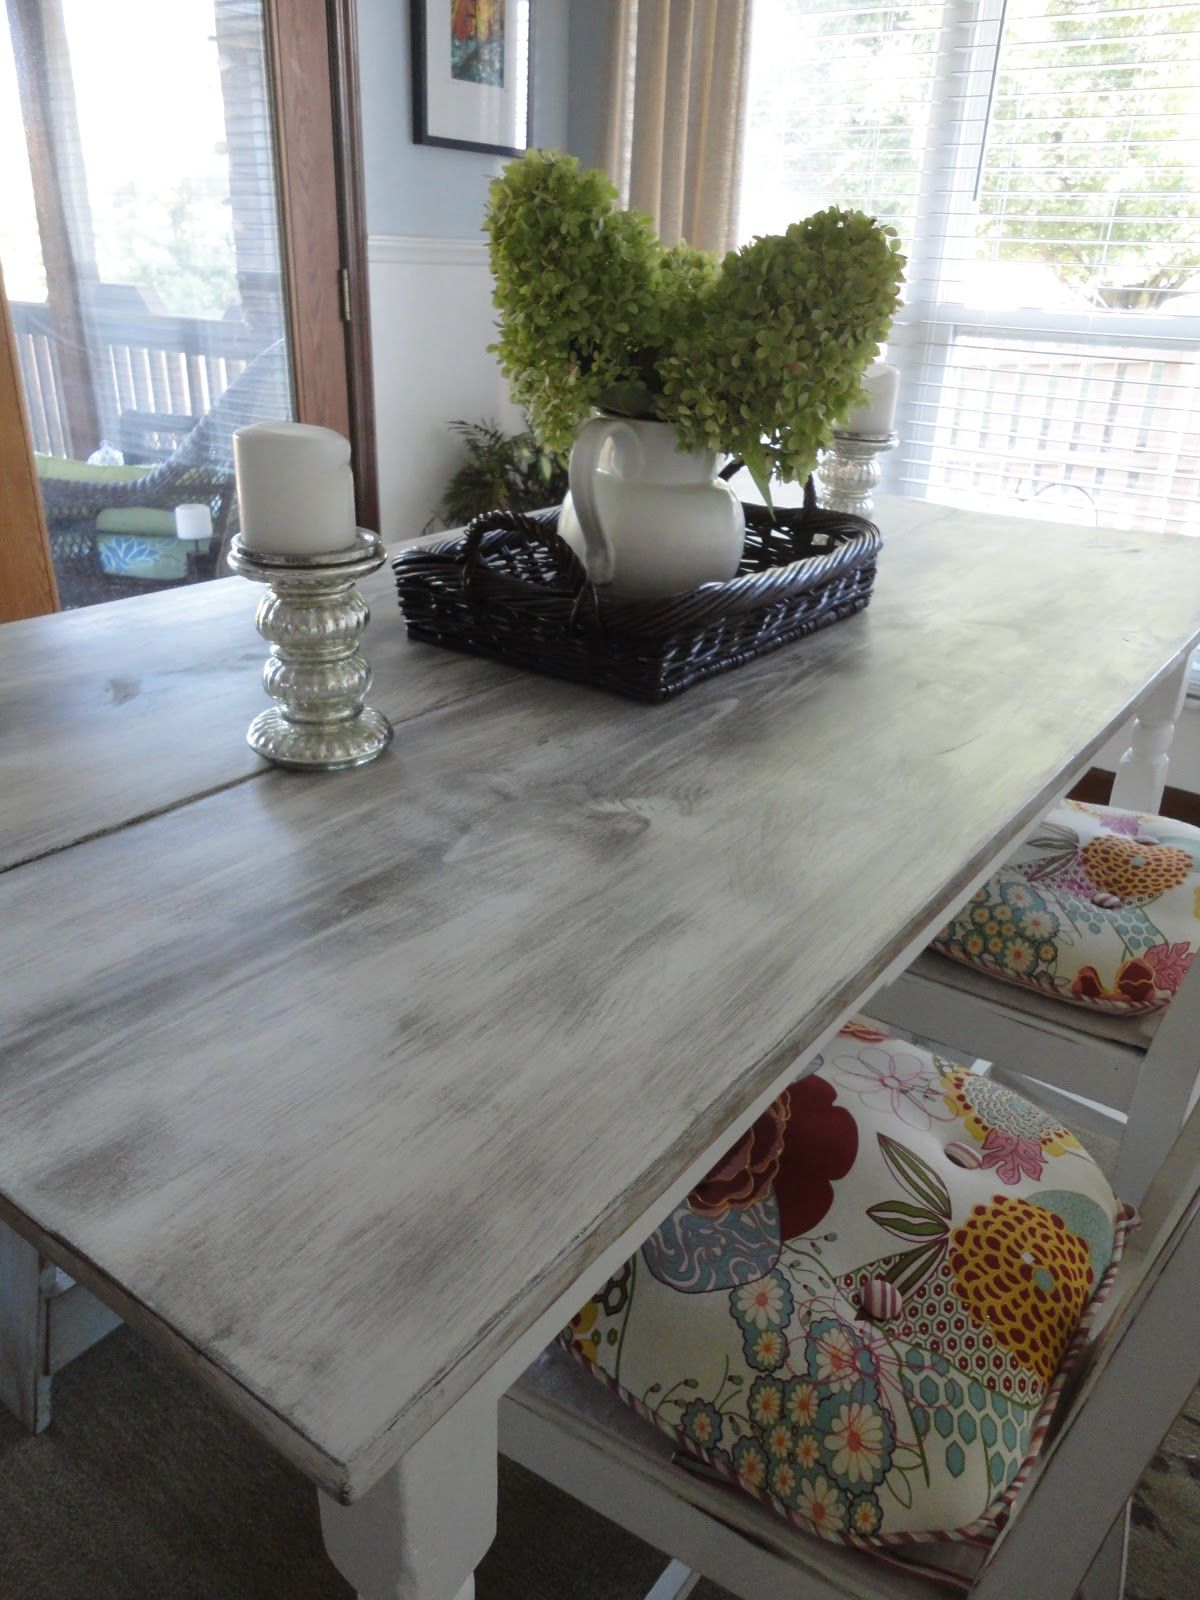 Vanilla Bean Breakfast Table Gets a New 'Do Distressed